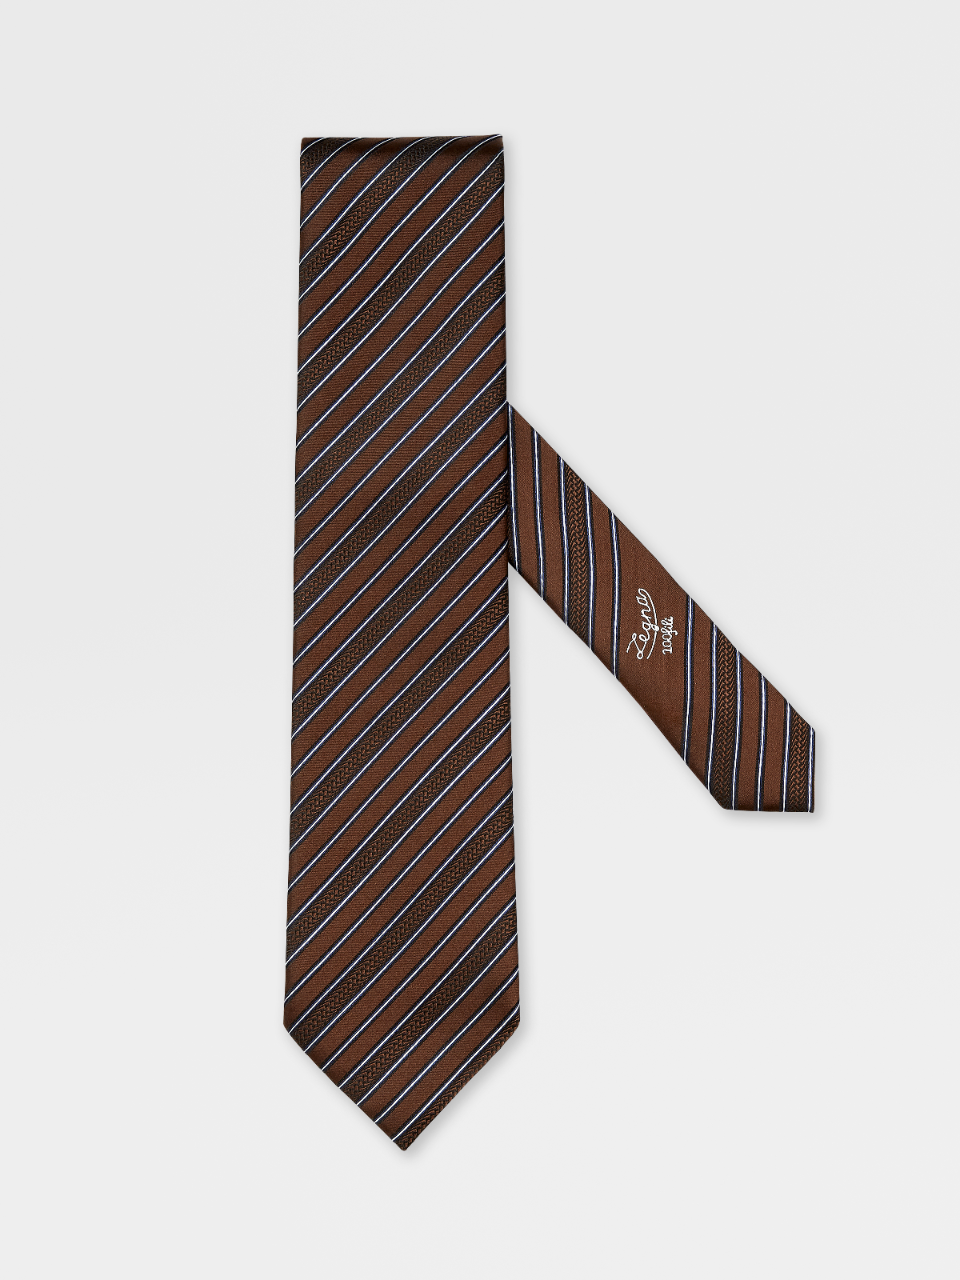 100fili Silk Regimental Tie